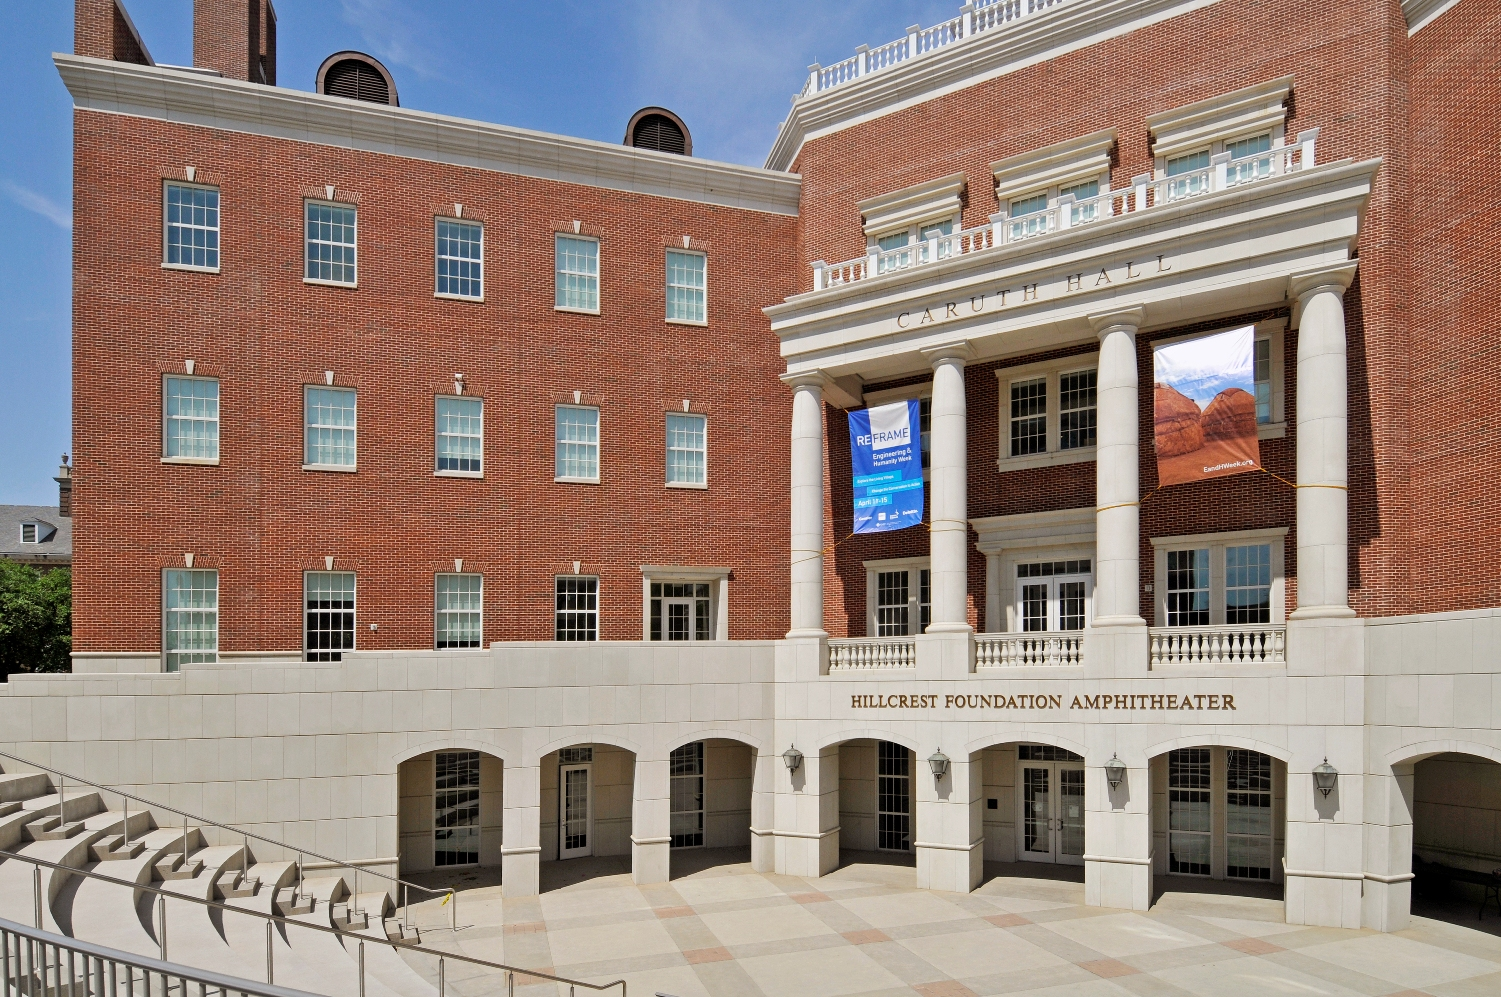 Southern Methodist University - Caruth Hall - Building veneer, cladding using Architectural Cast Stone, Architectural GFRC